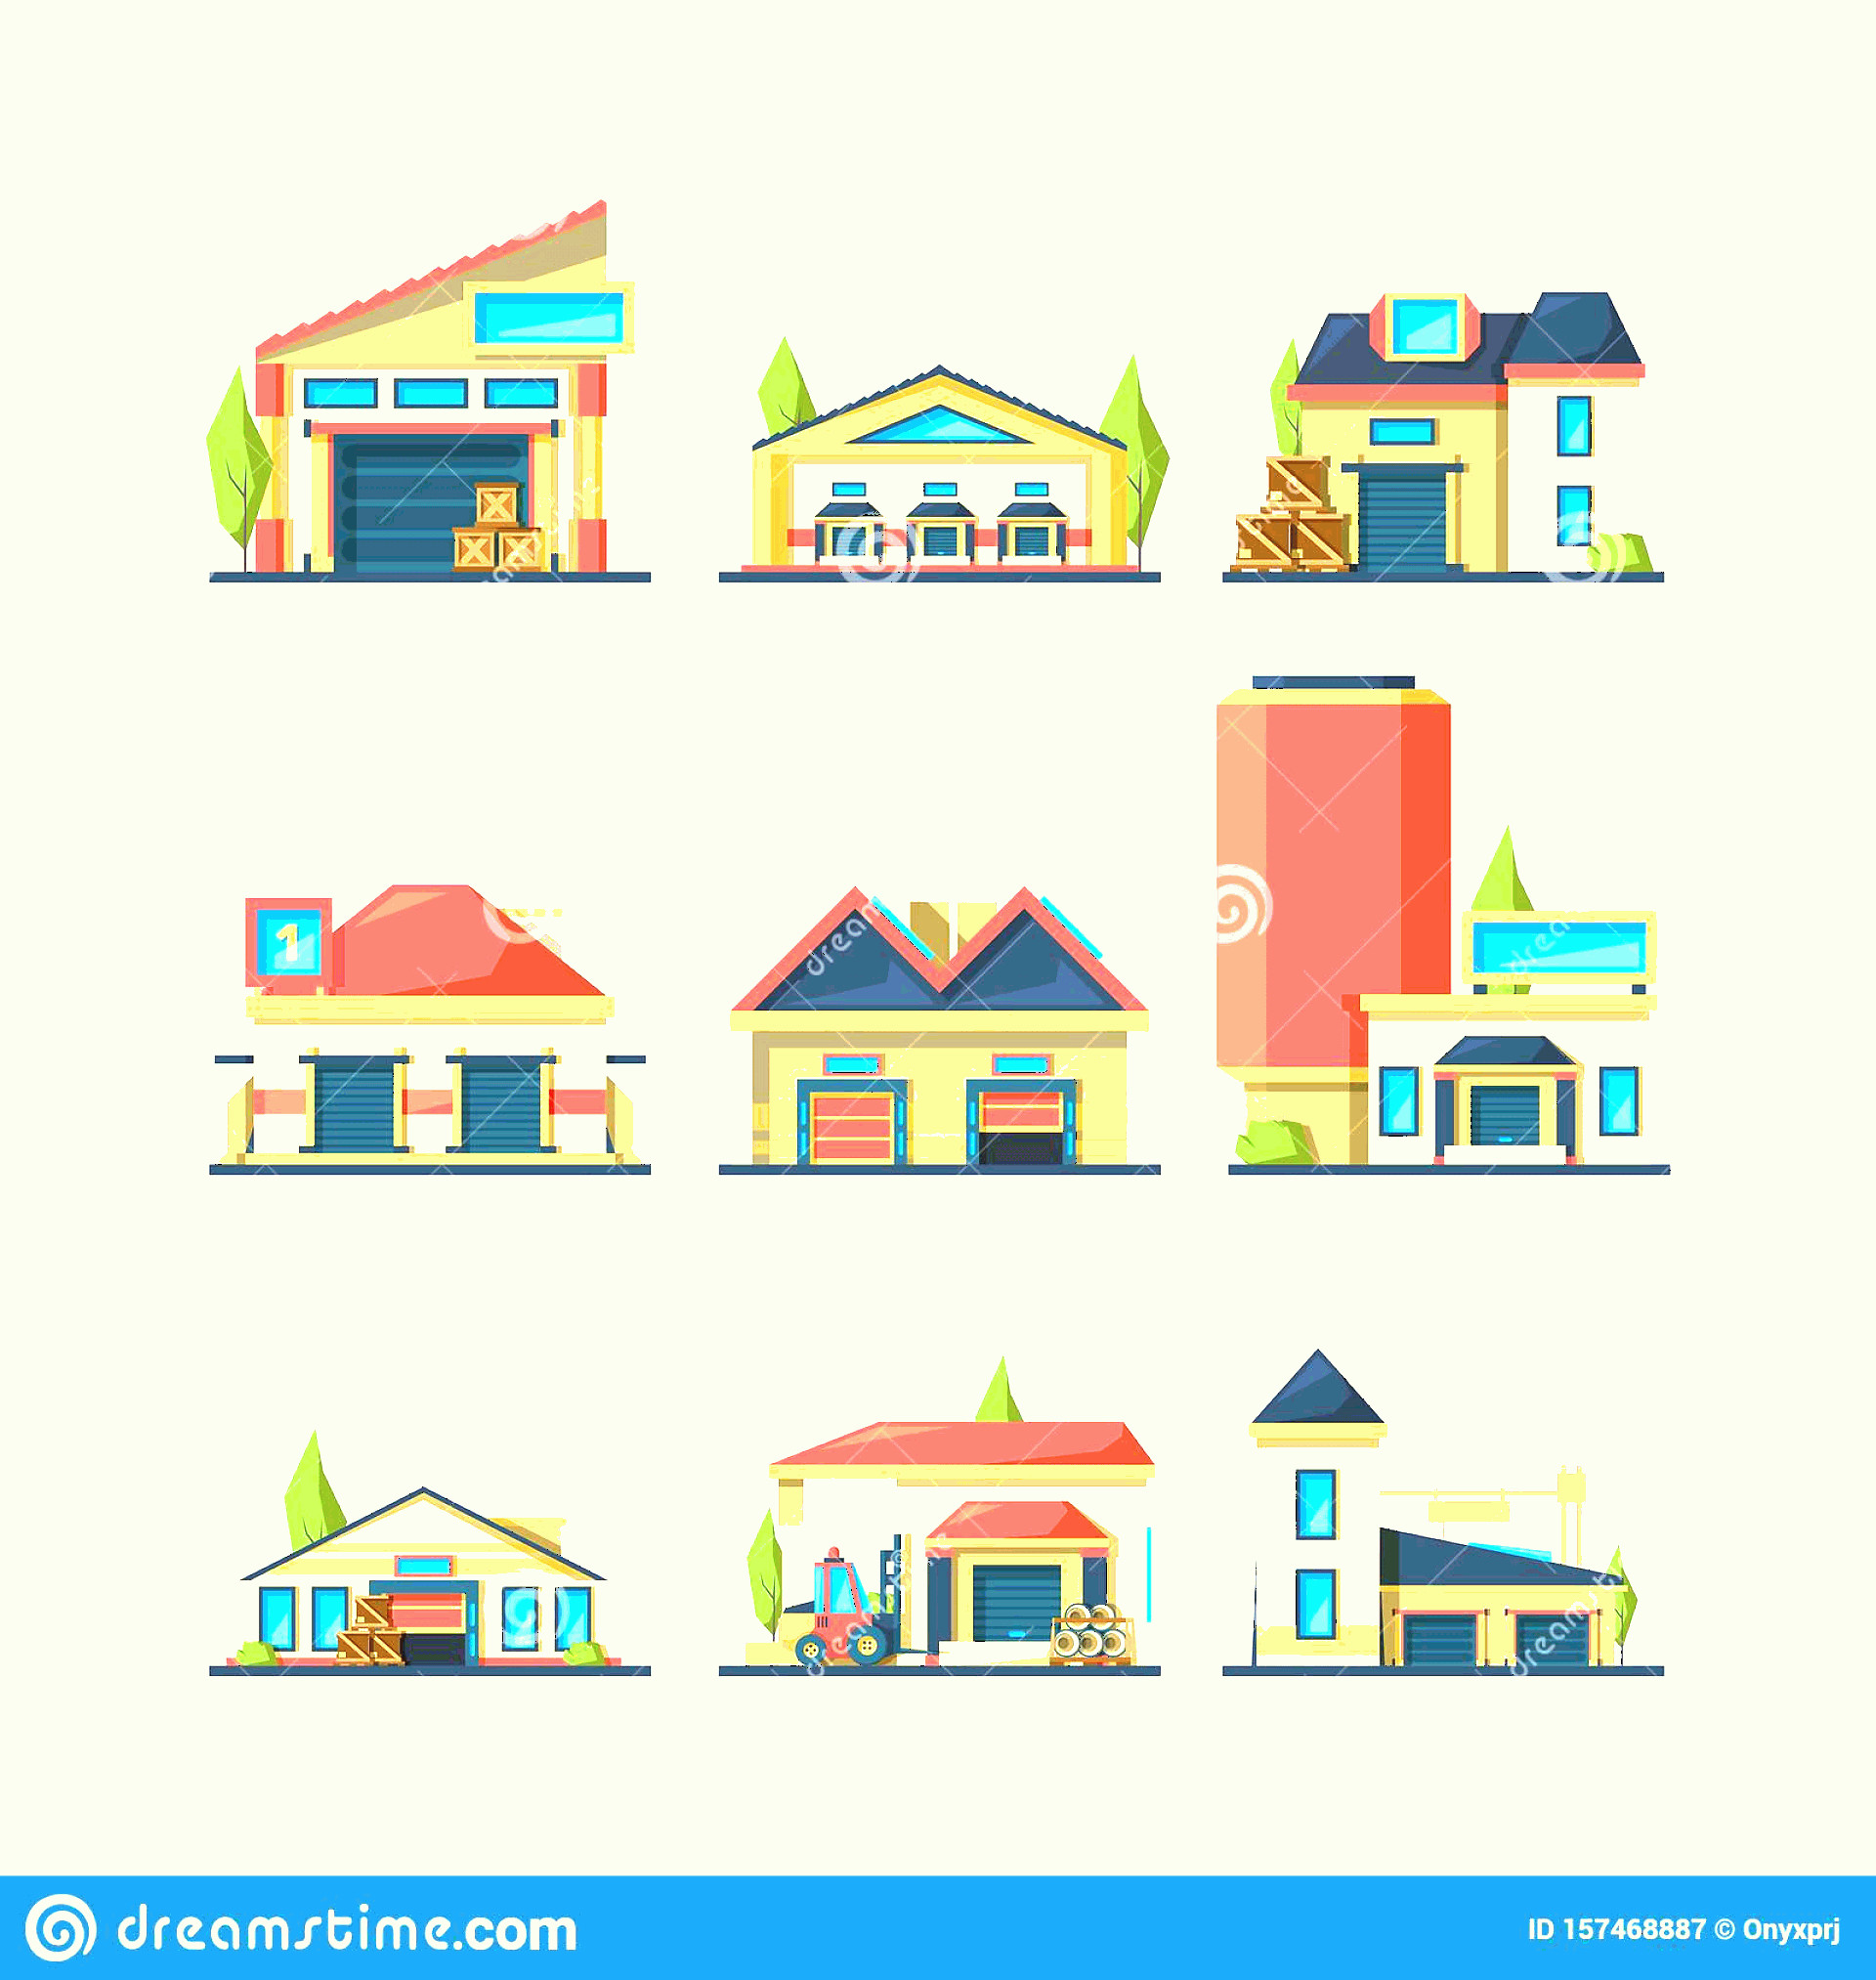 Flat Vector House: Warehouse Flat Industrial Buildings Empty Construction Factory Vector Houses Packages Different Items Warehouse Flat Image